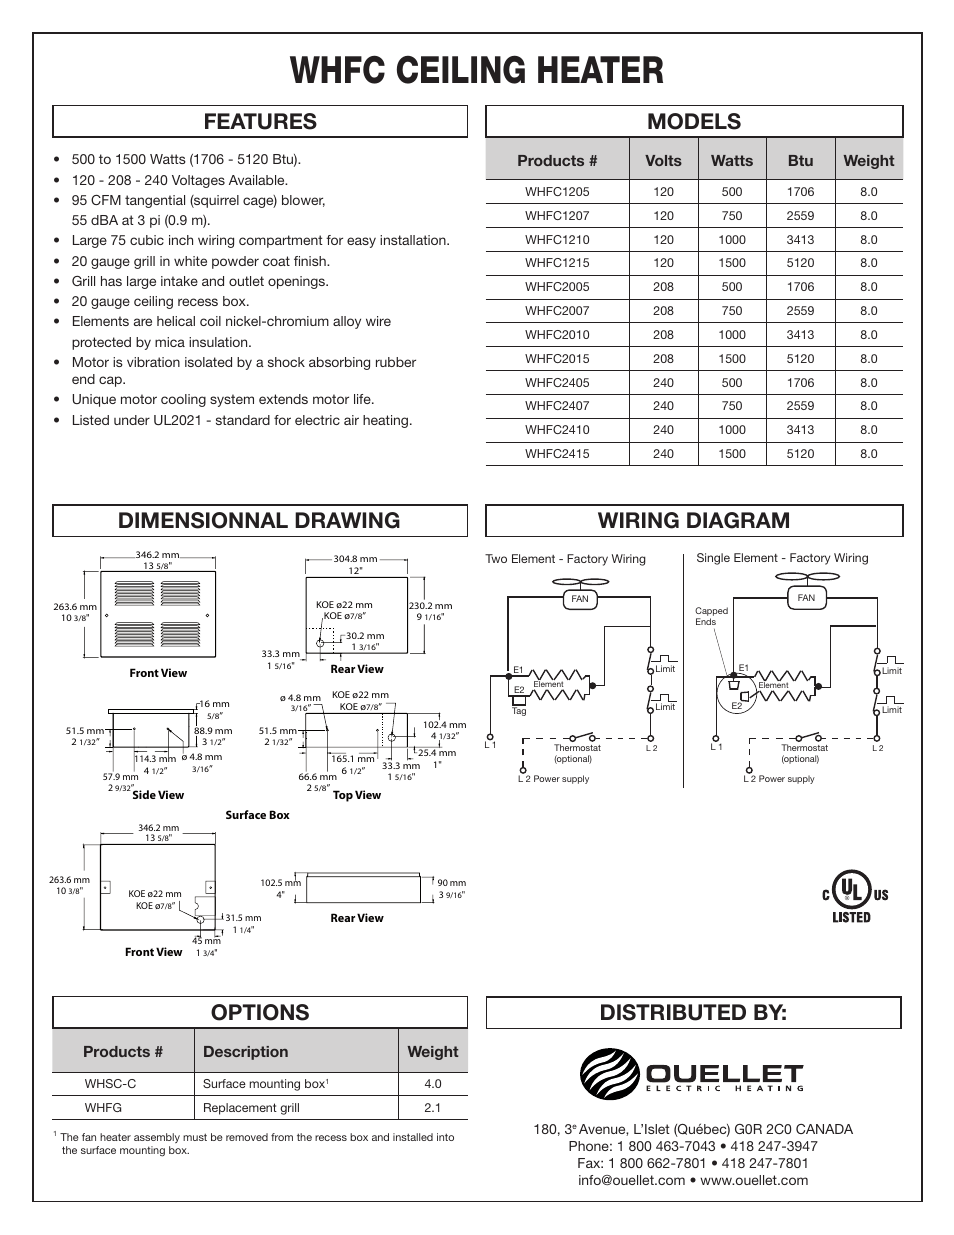 hight resolution of whfc ceiling heater distributed by features models options wiring diagram dimensionnal drawing